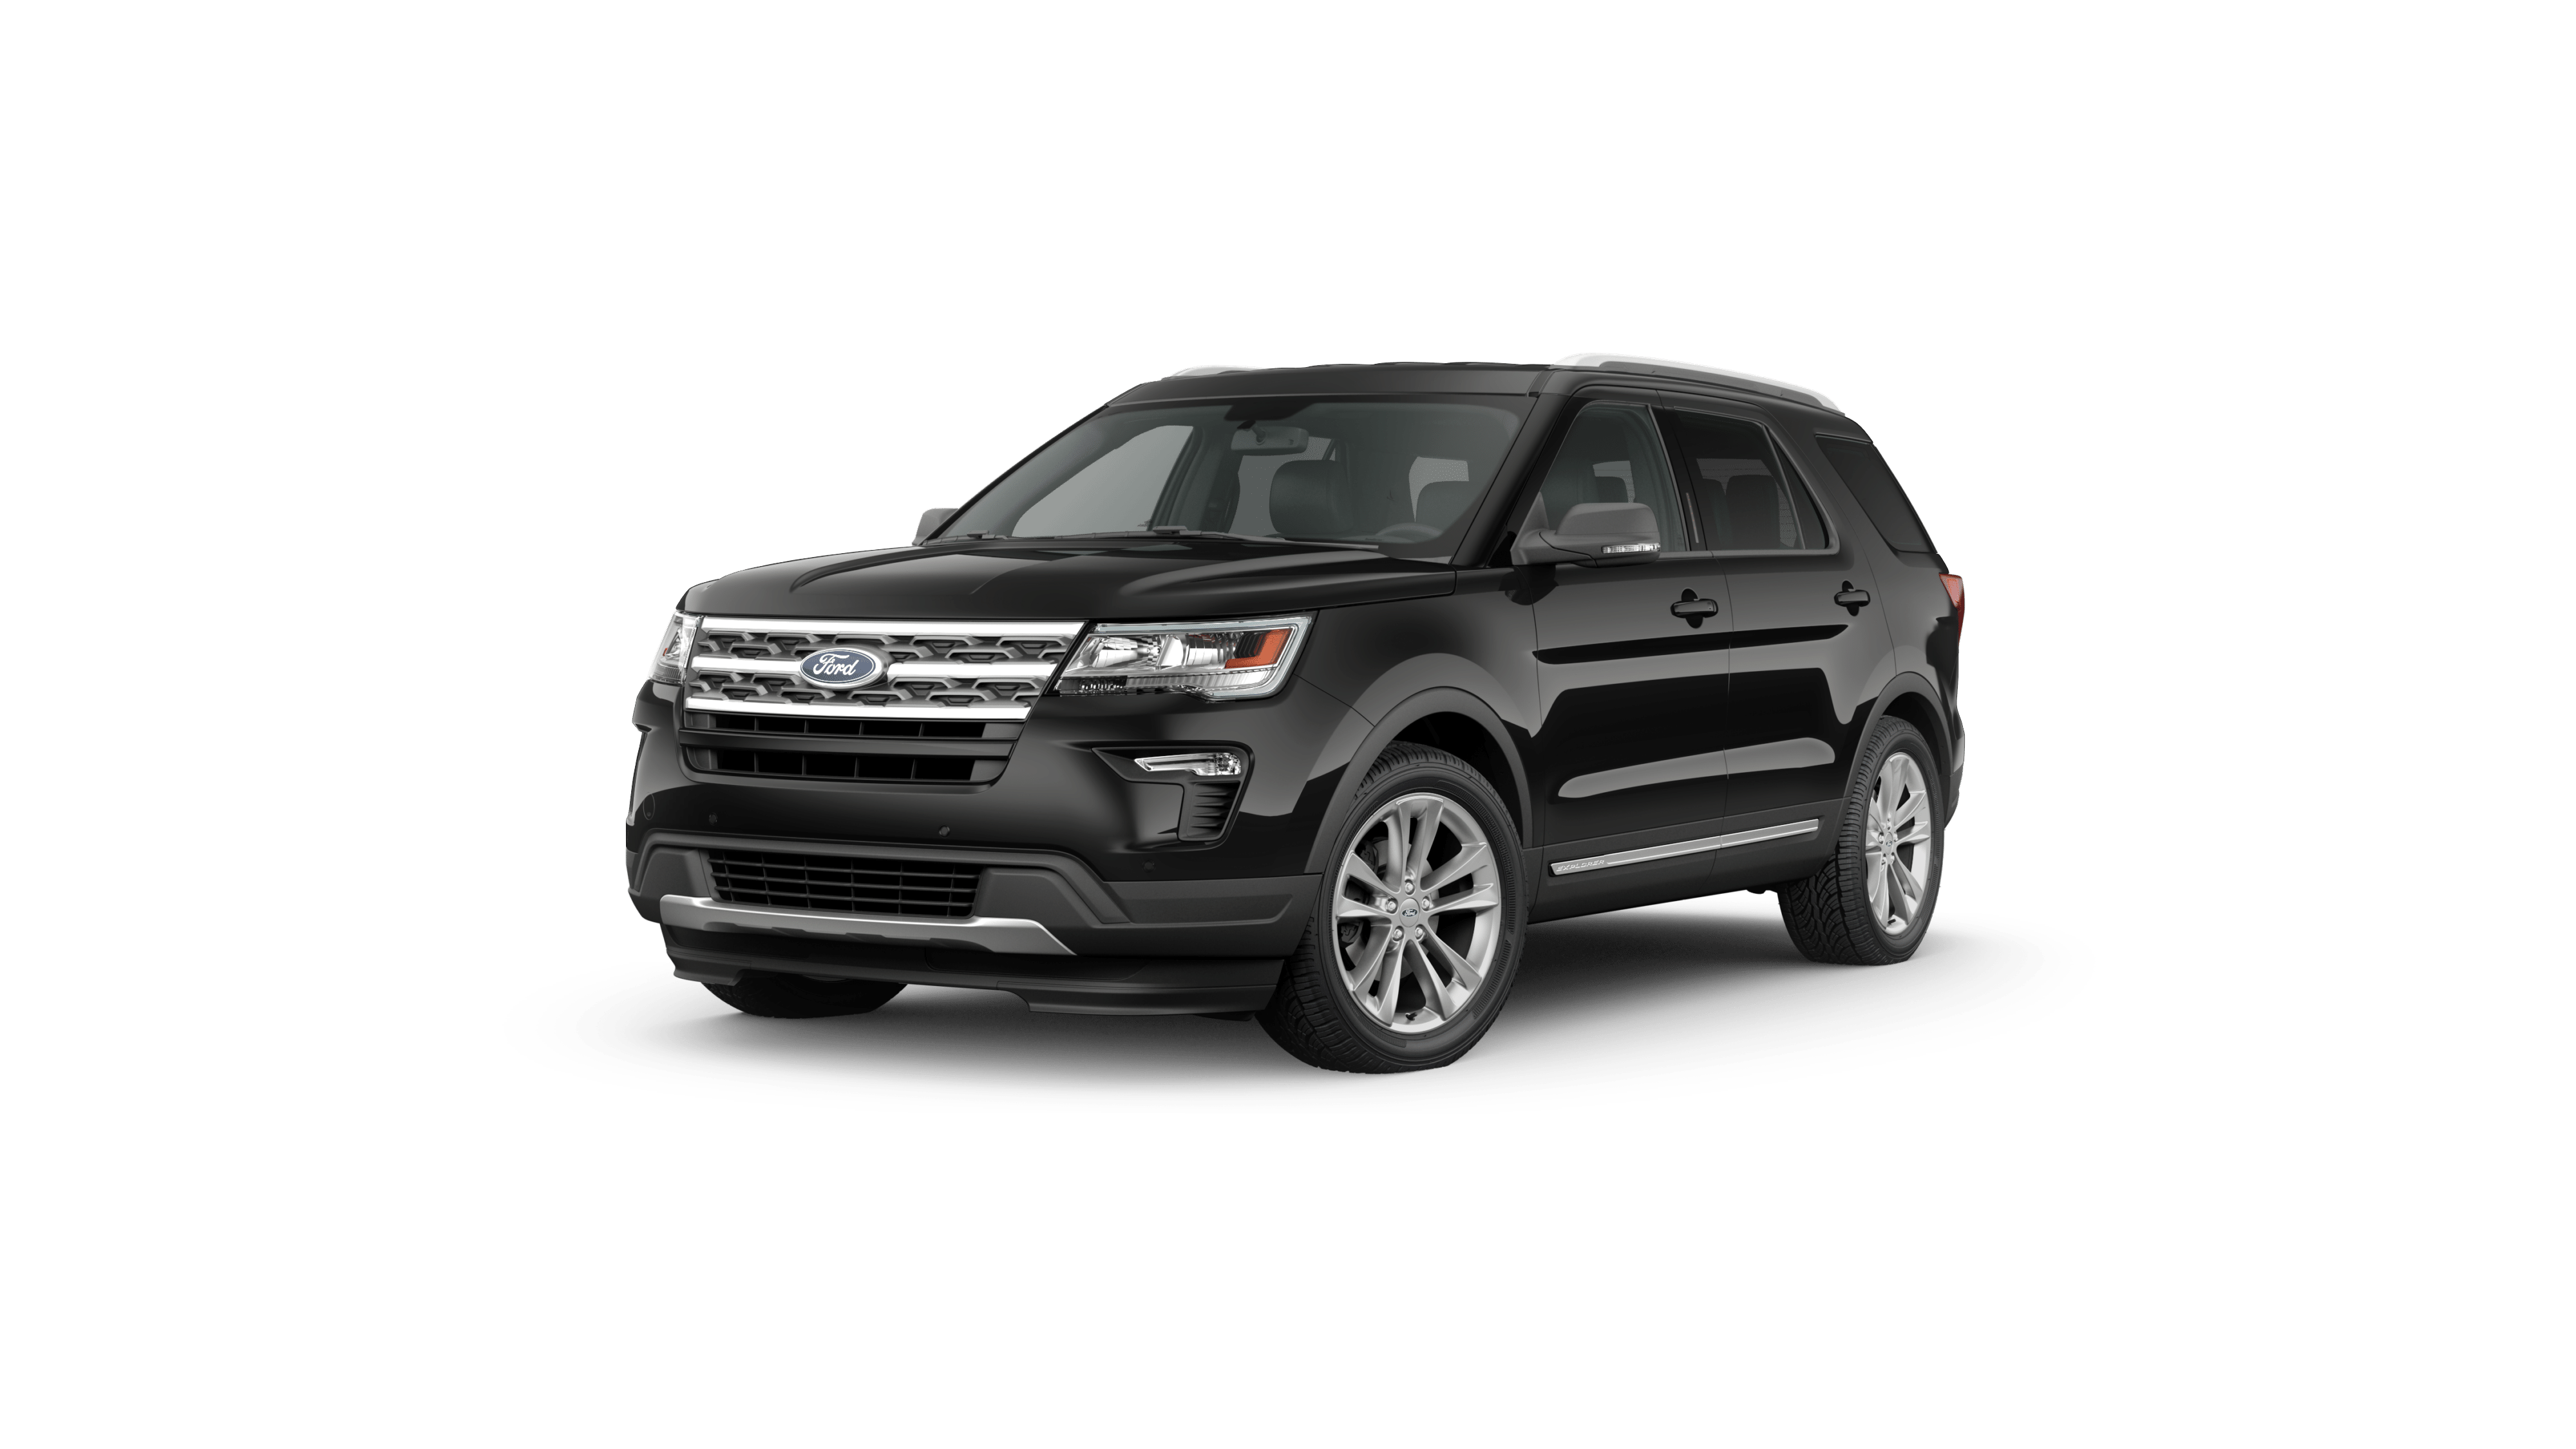 2019 ford explorer vehicle photo in marshall mi 49068 9548